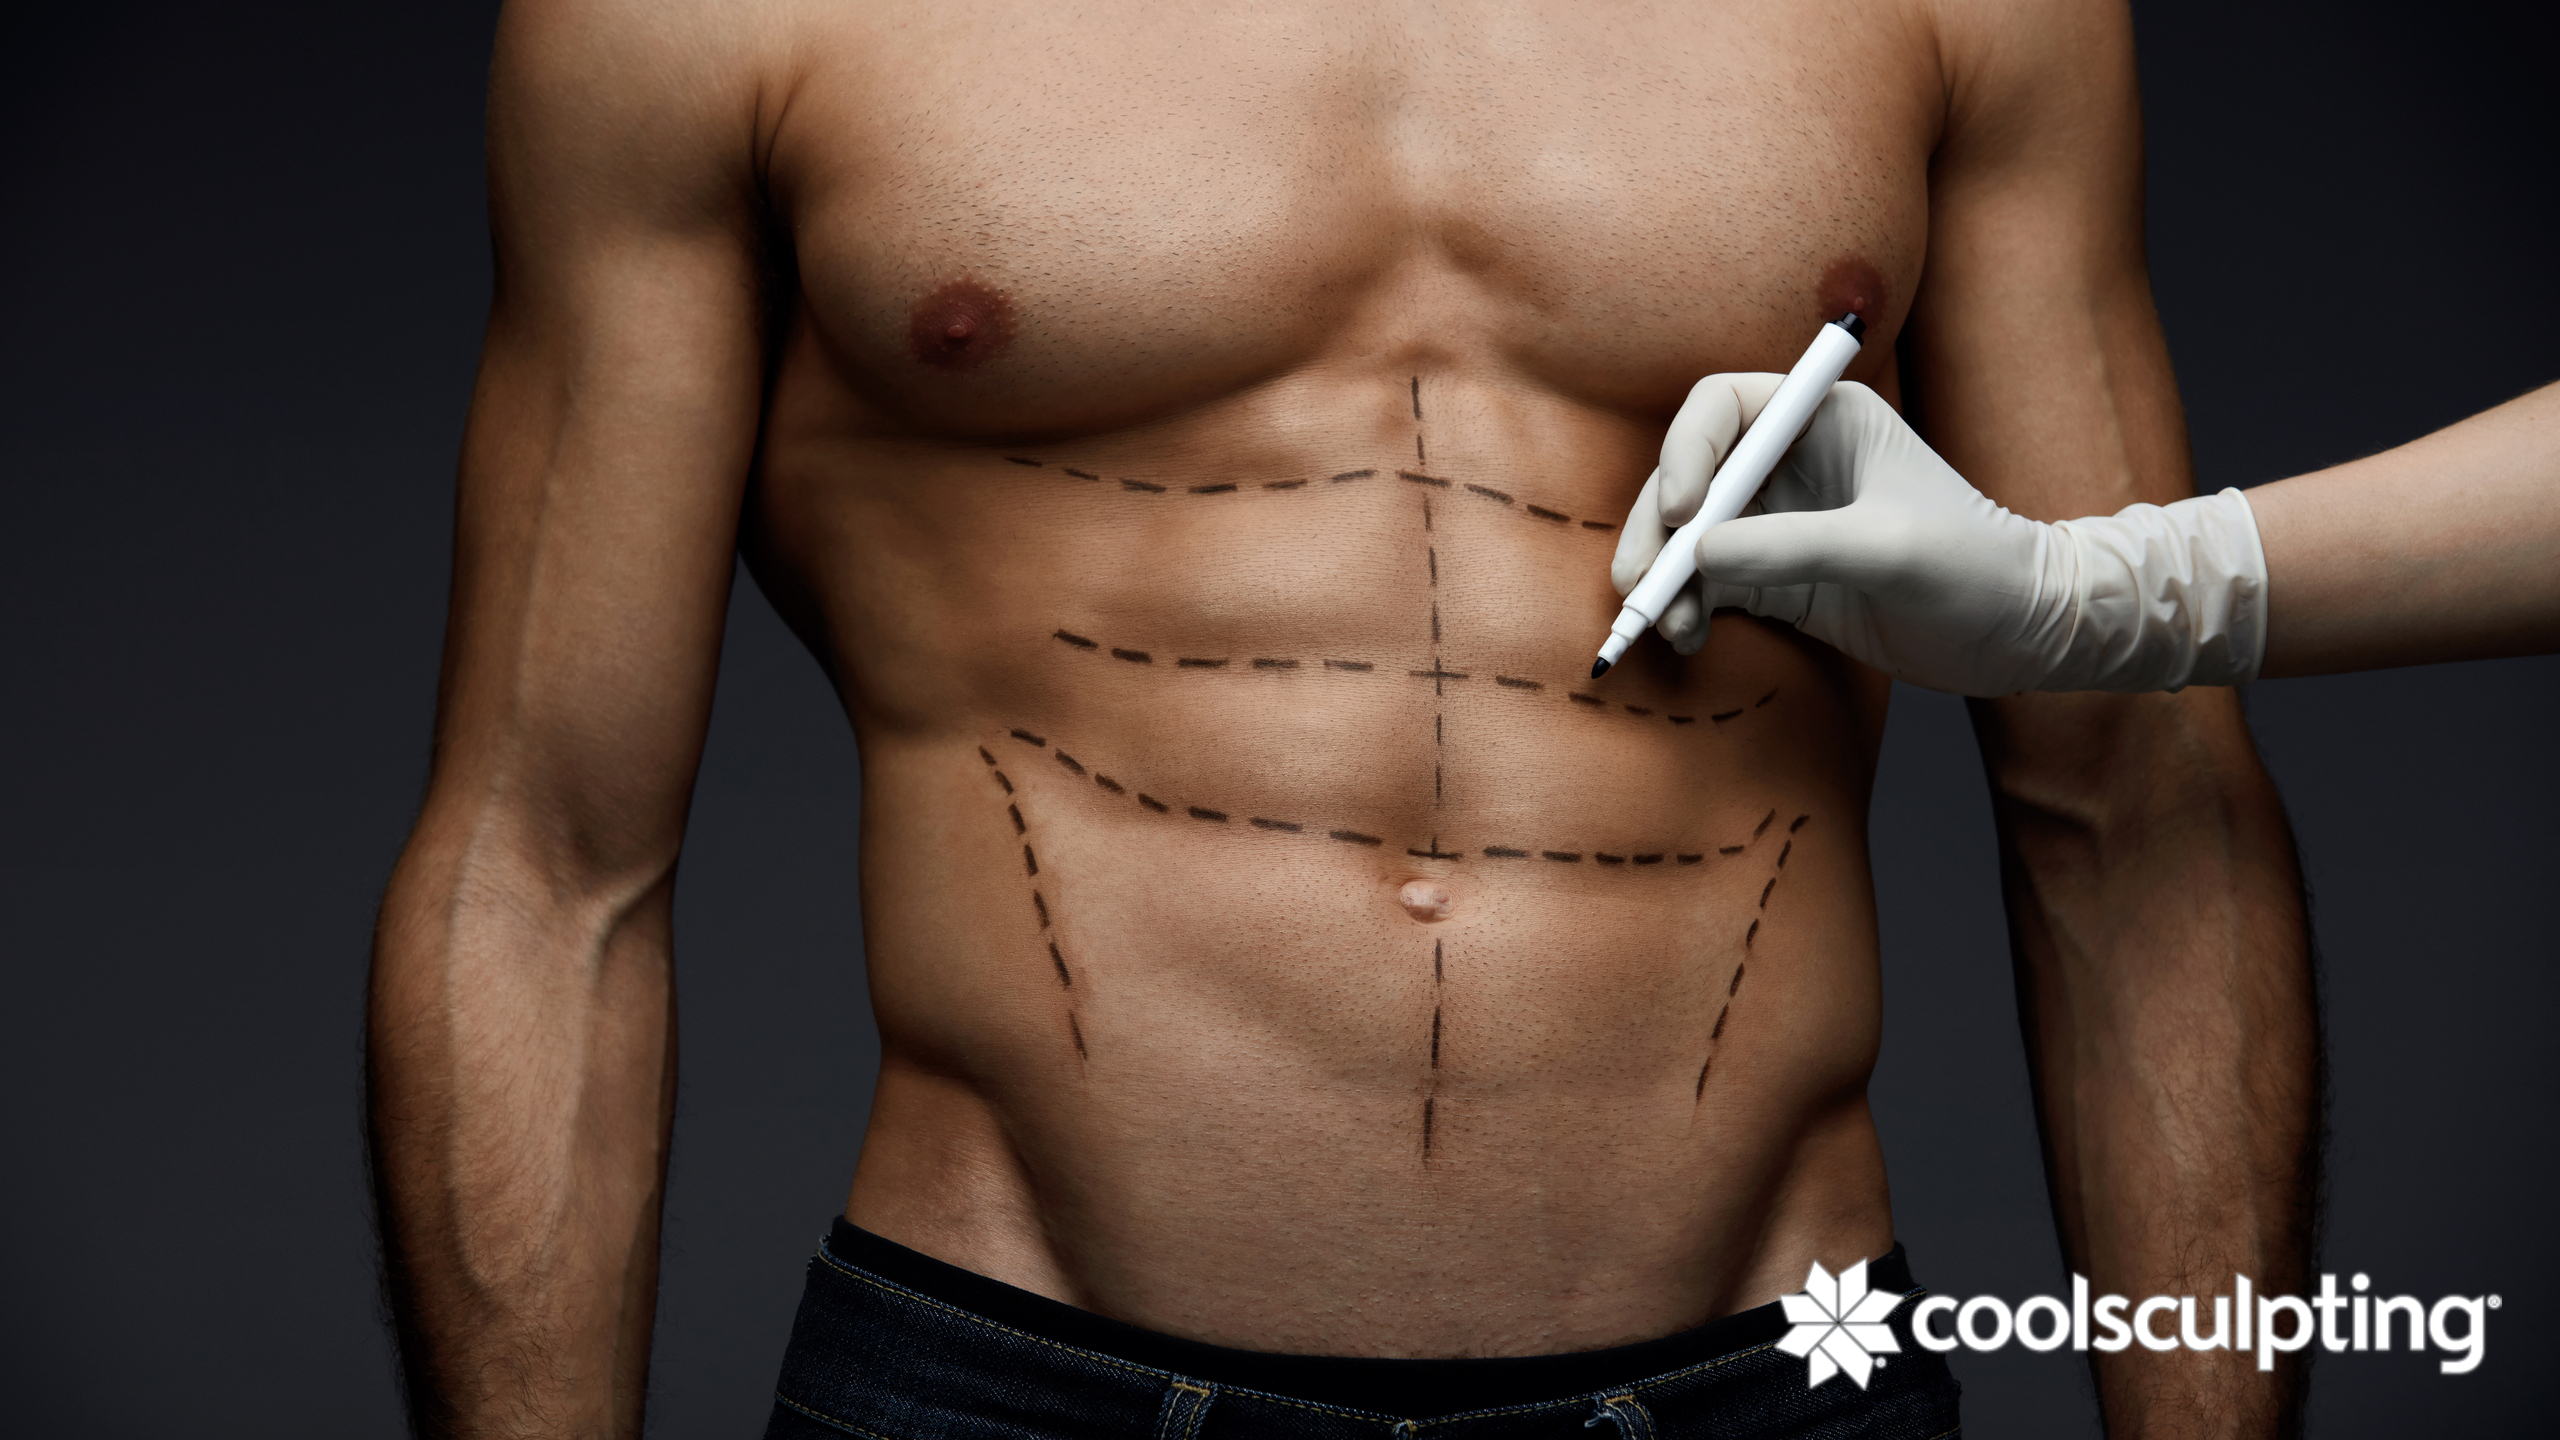 Announcing Coolsculpting Las Vegas for Men; Goodbye Crunches, Hello Ripped Abs Without the Gym